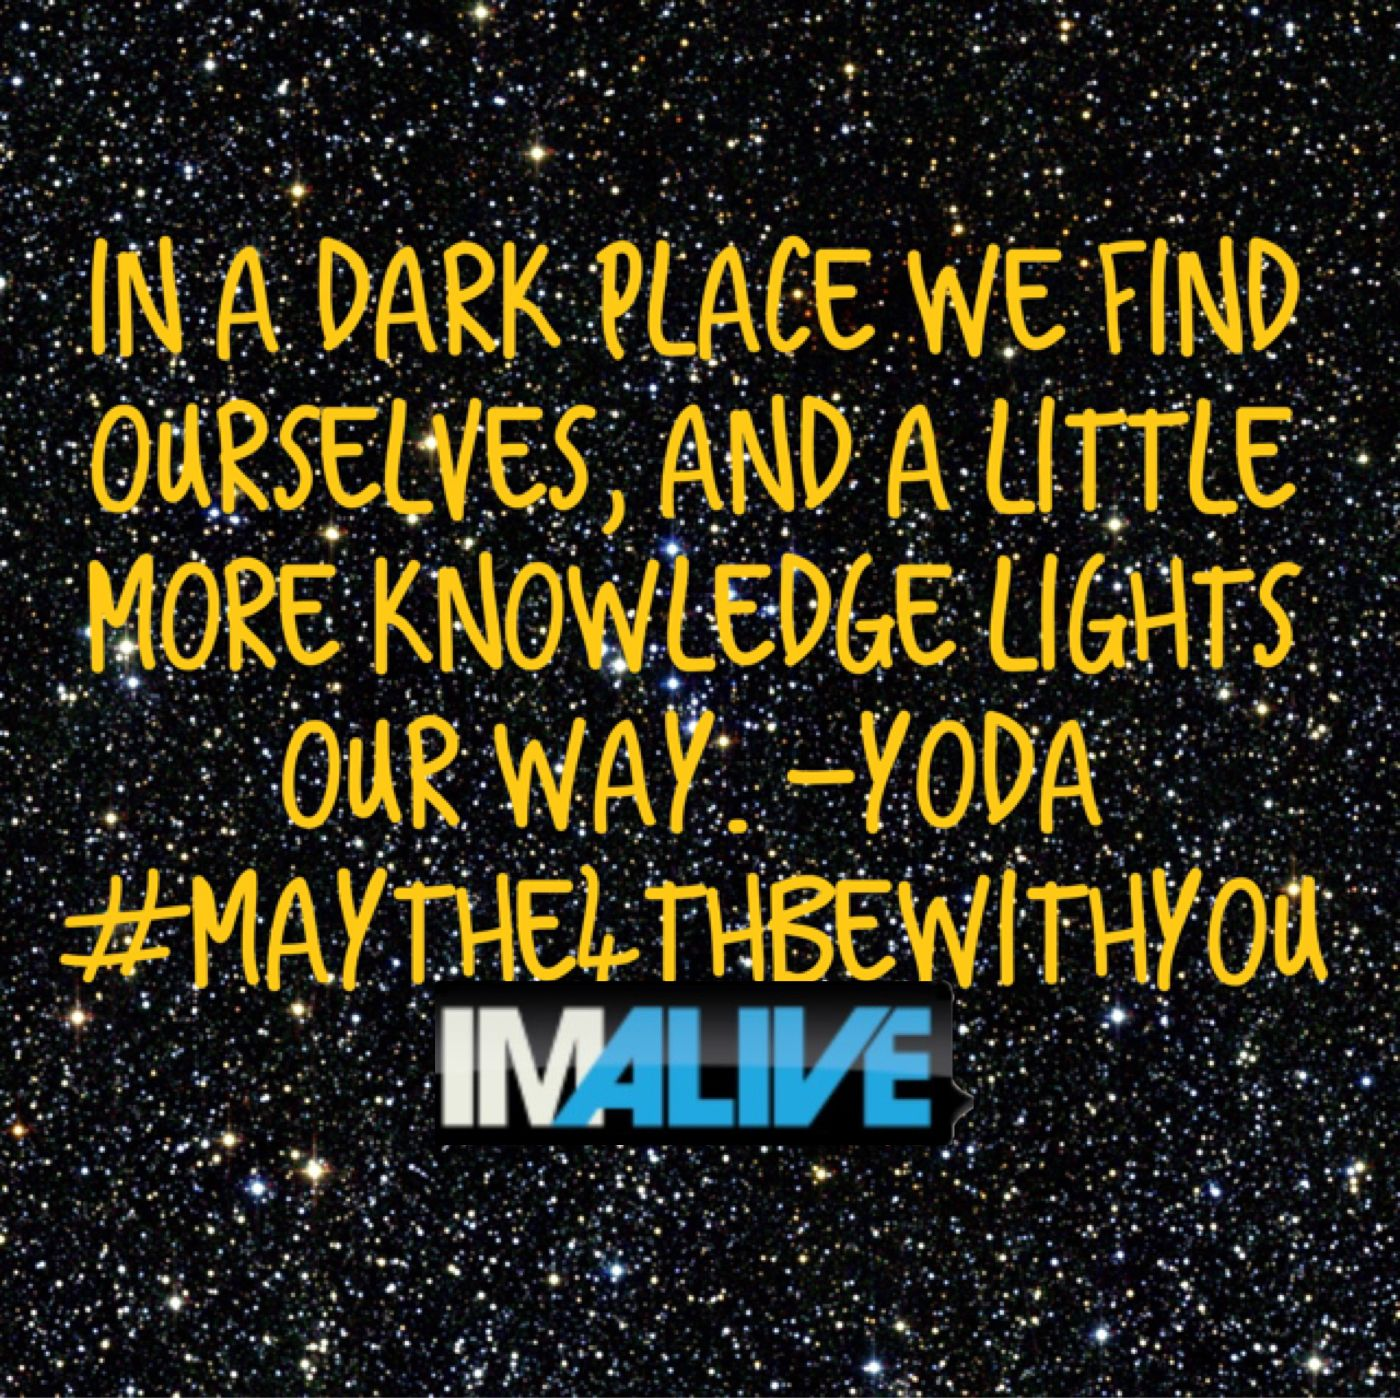 Suicide Prevention Quotes Imalive  Suicide Prevention  May The Fourth Be With You